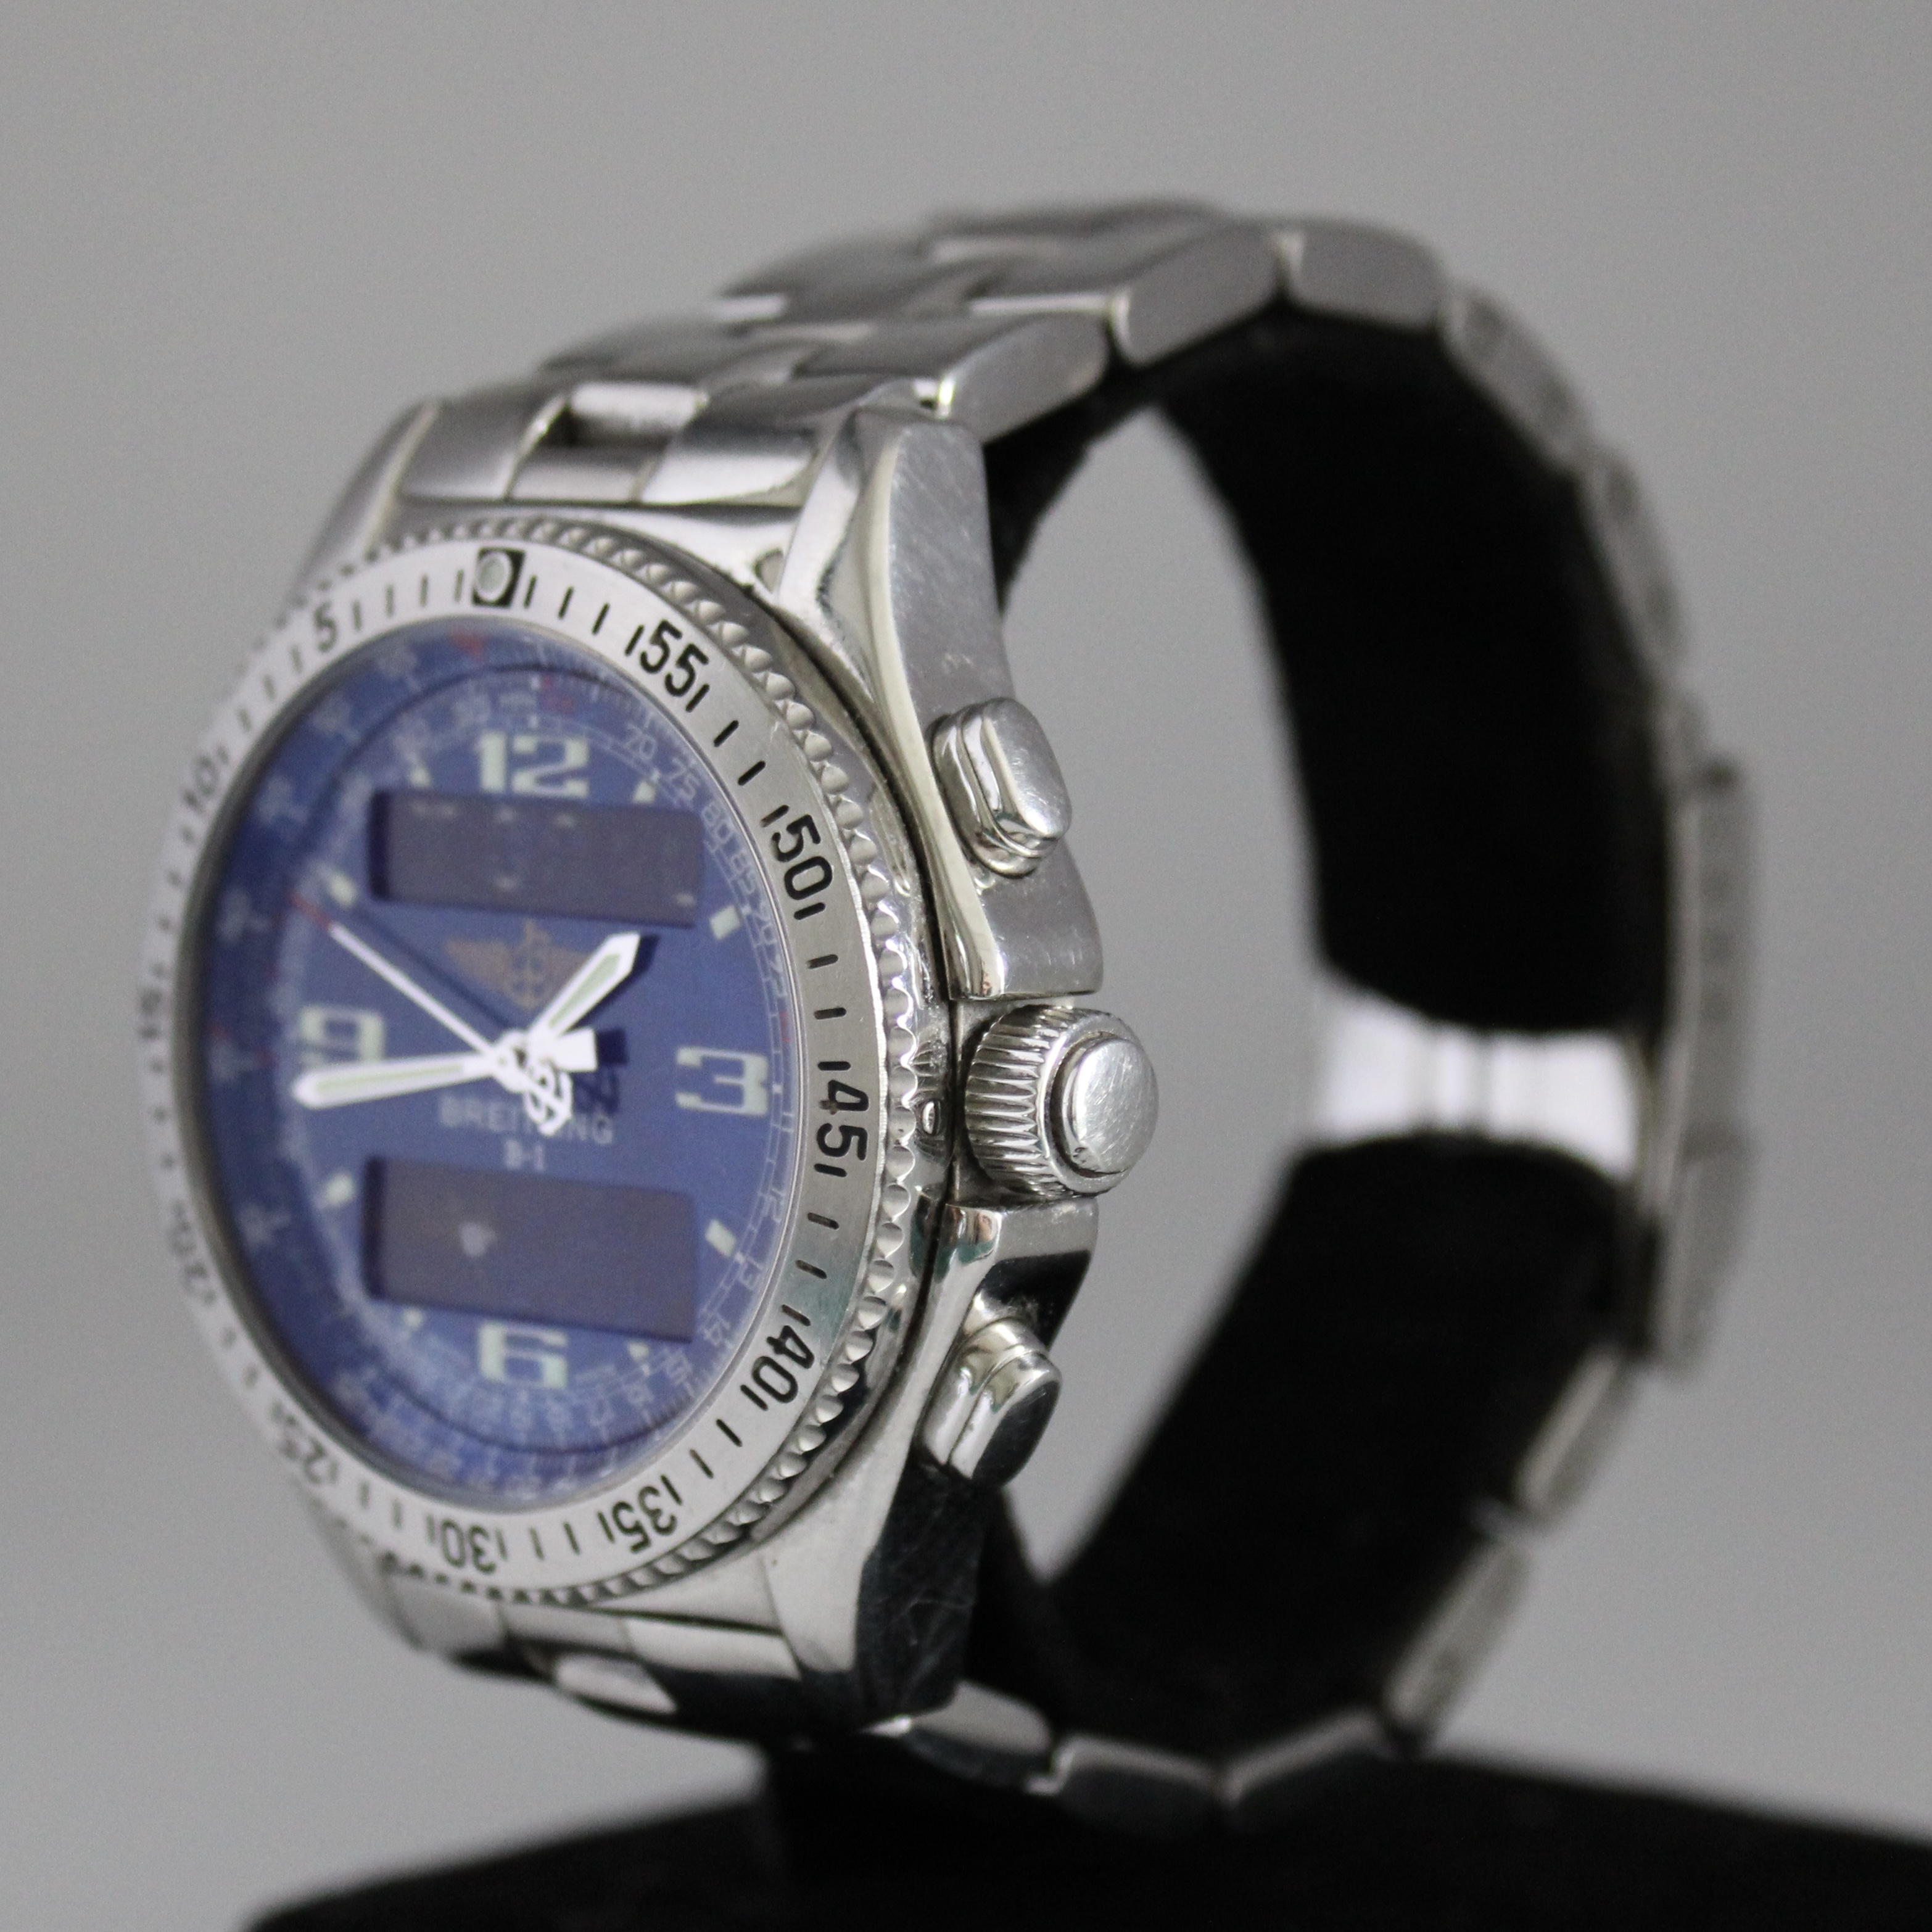 Breitling B1 ref A68062 - Image 2 of 4